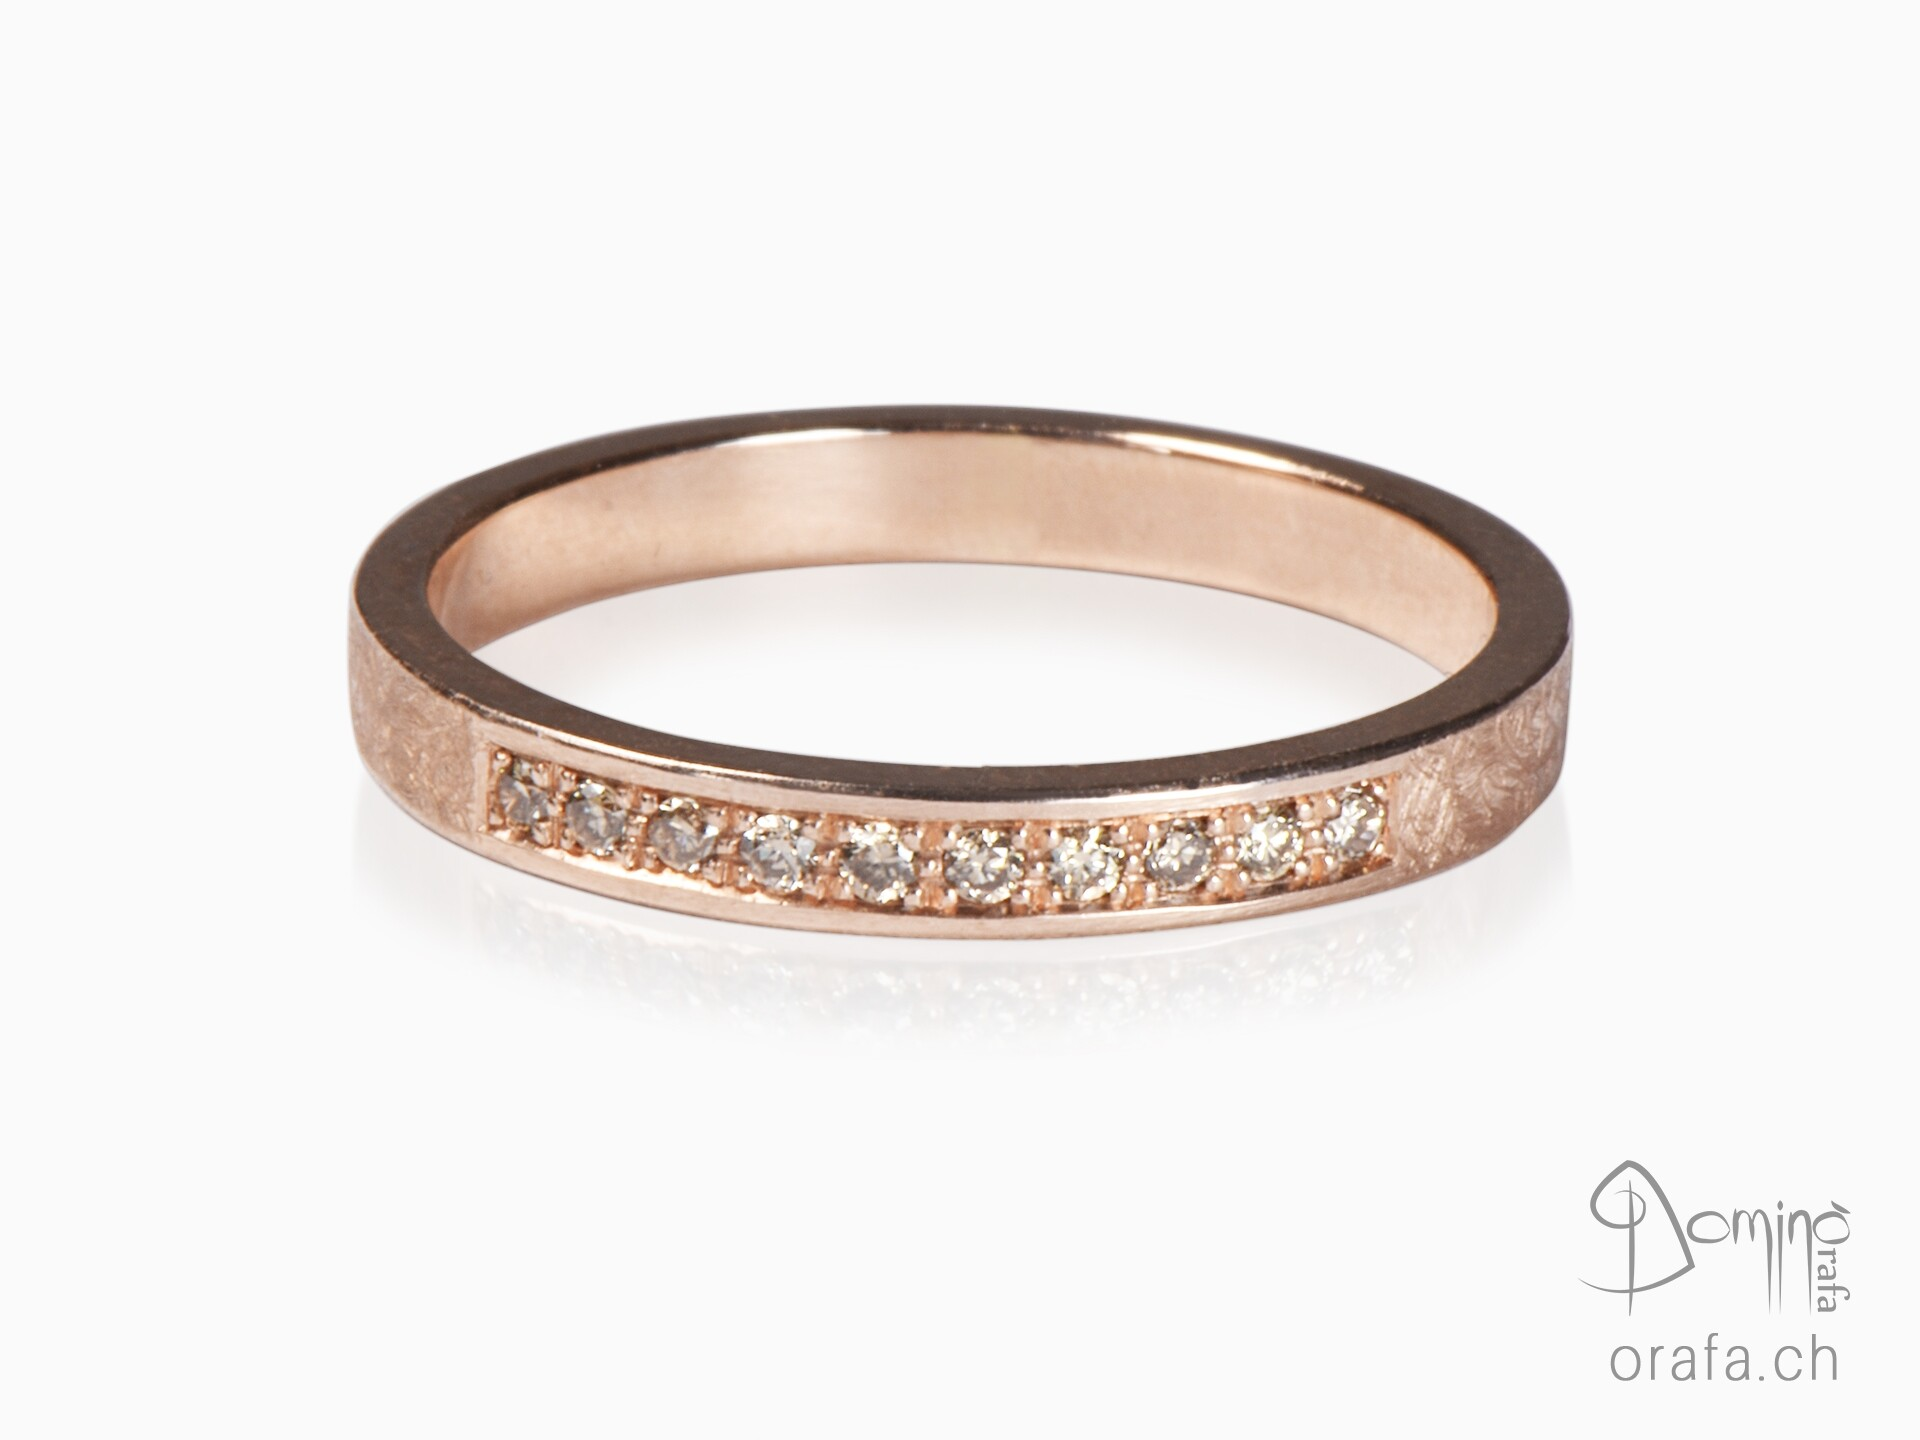 Red gold ring with 10 cognac diamonds